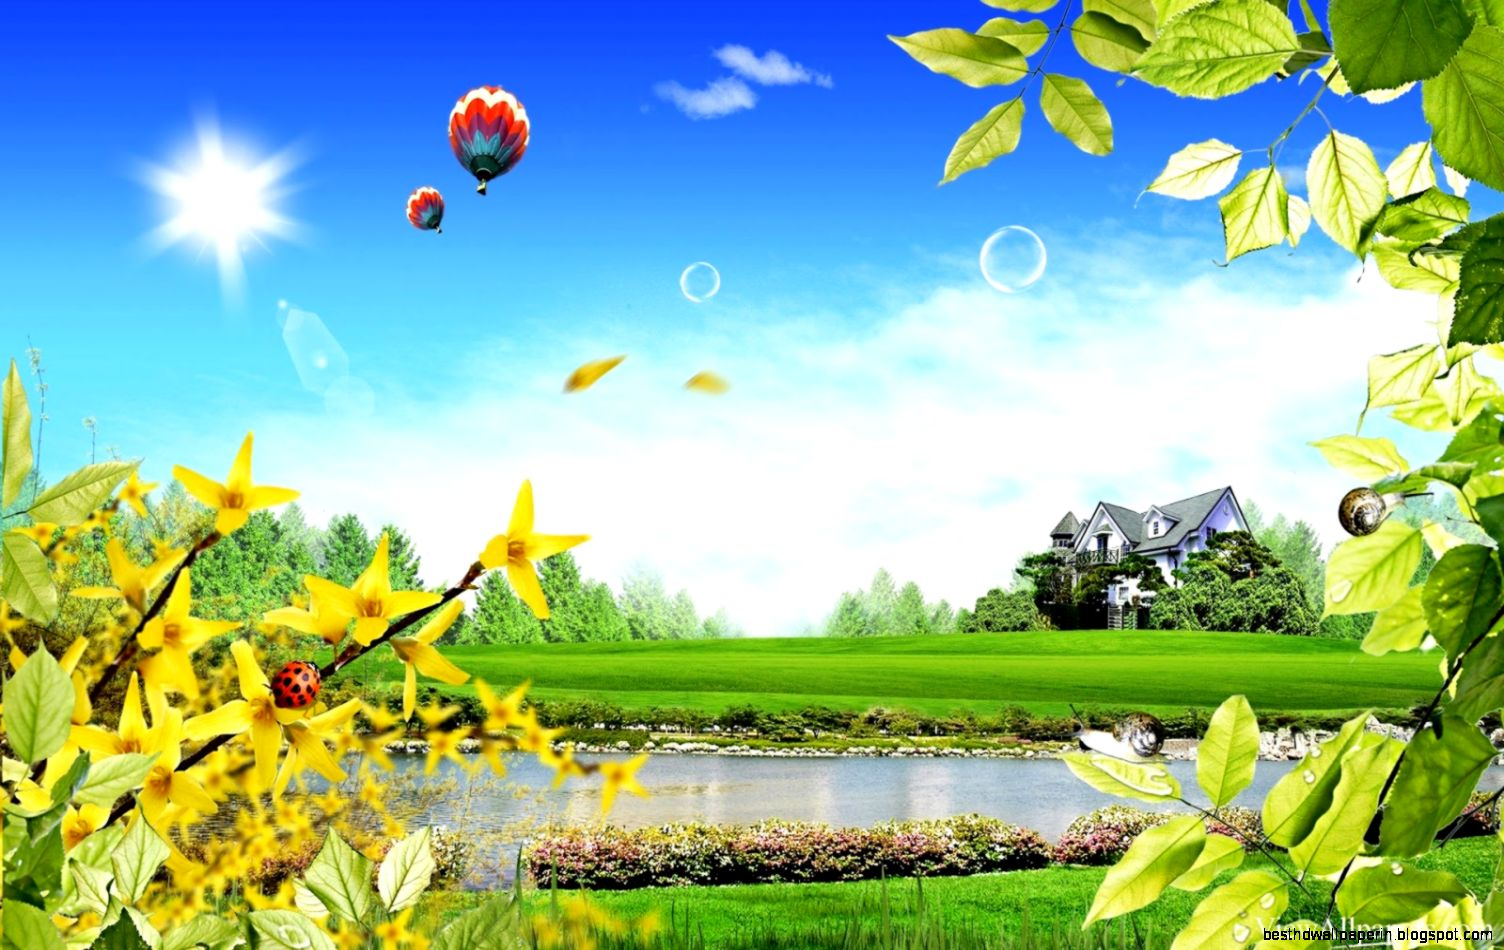 3D Nature Wallpapers Free Background Download | Best HD ...